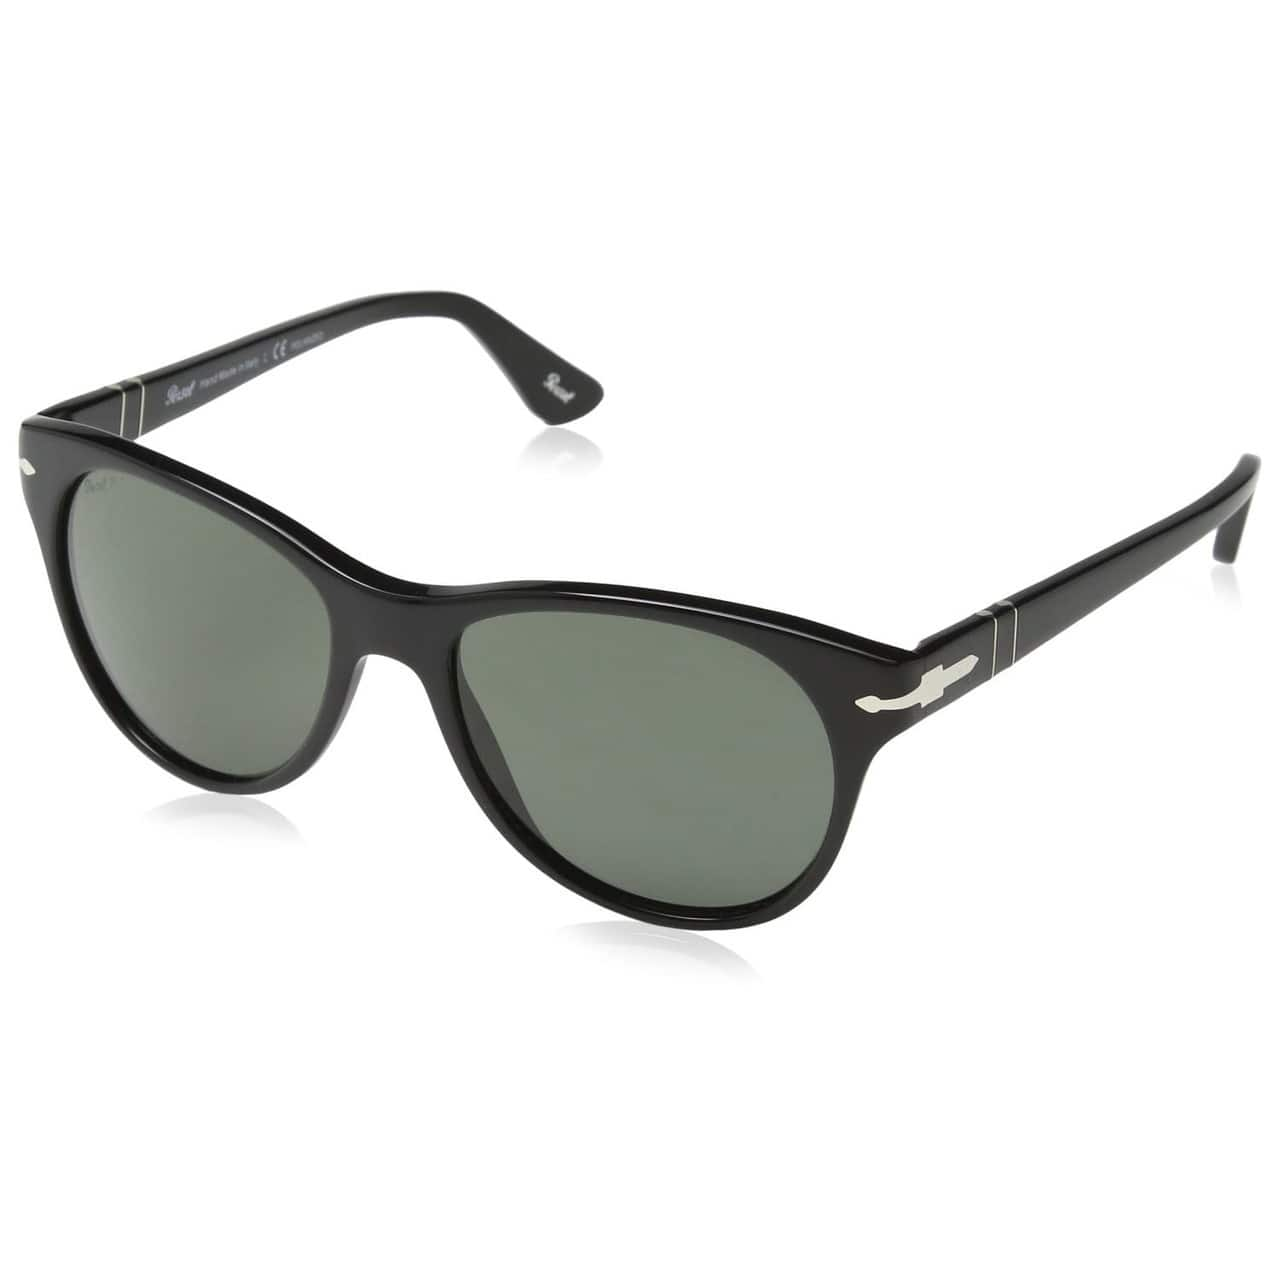 Persol PO3134S Sunglasses with Black Crystal Polarized Green Lens for $59.99 + Free Shipping